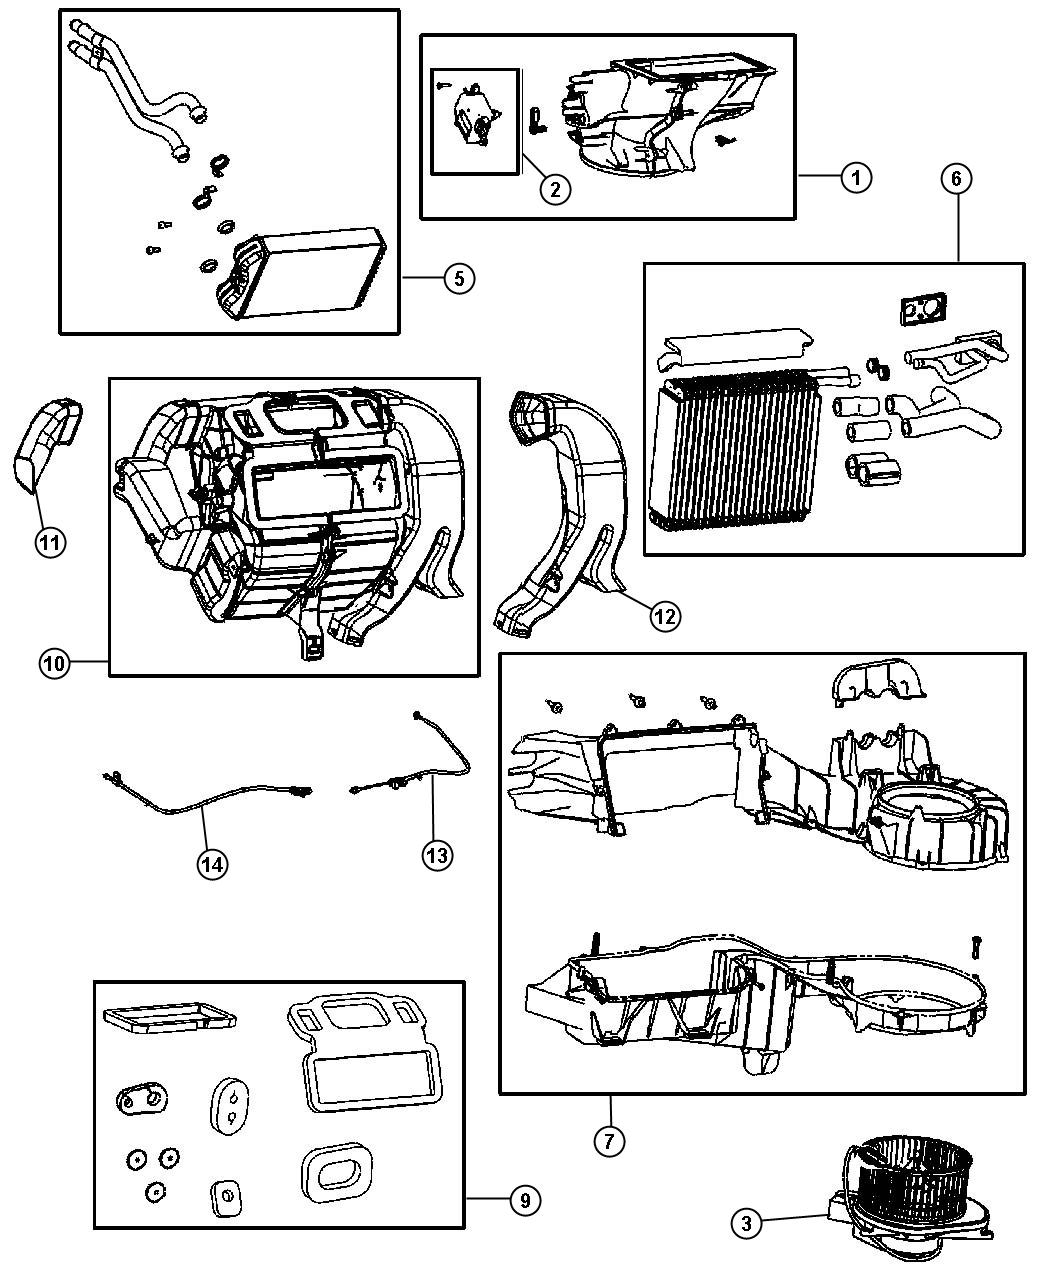 2006 PT Cruiser Air Conditioning Diagram http://www.factorychryslerparts.com/showassembly.aspx?ukey_assembly=583281